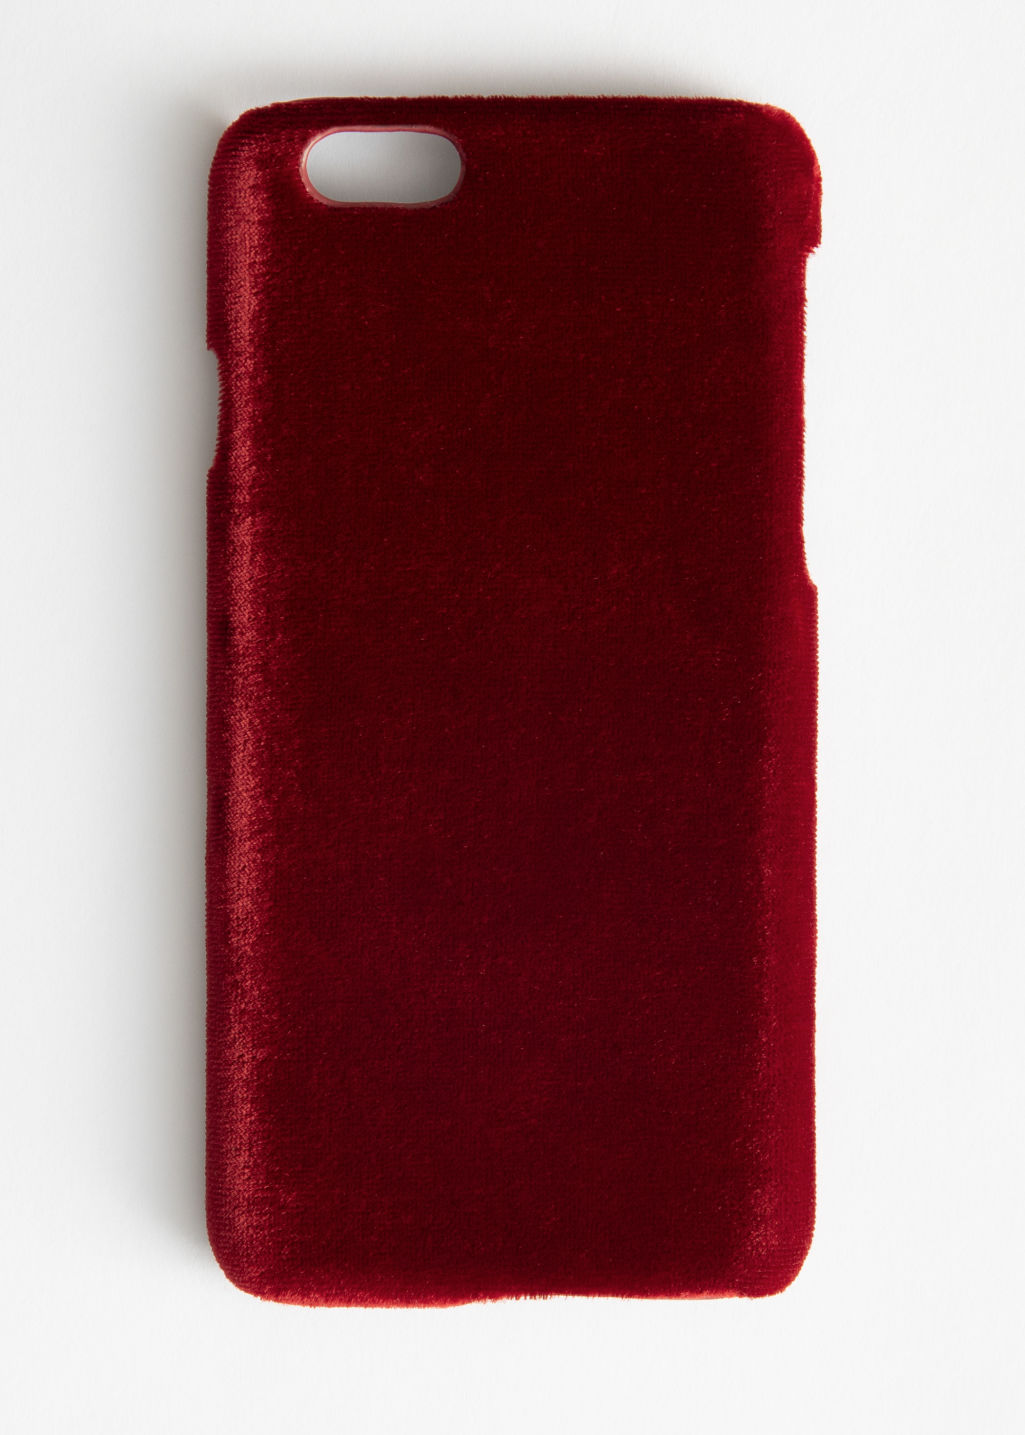 huge selection of ba1e7 ccb31 Velvet Snake Embossed iPhone Case - iPhone 7 - iPhone cases - & Other  Stories